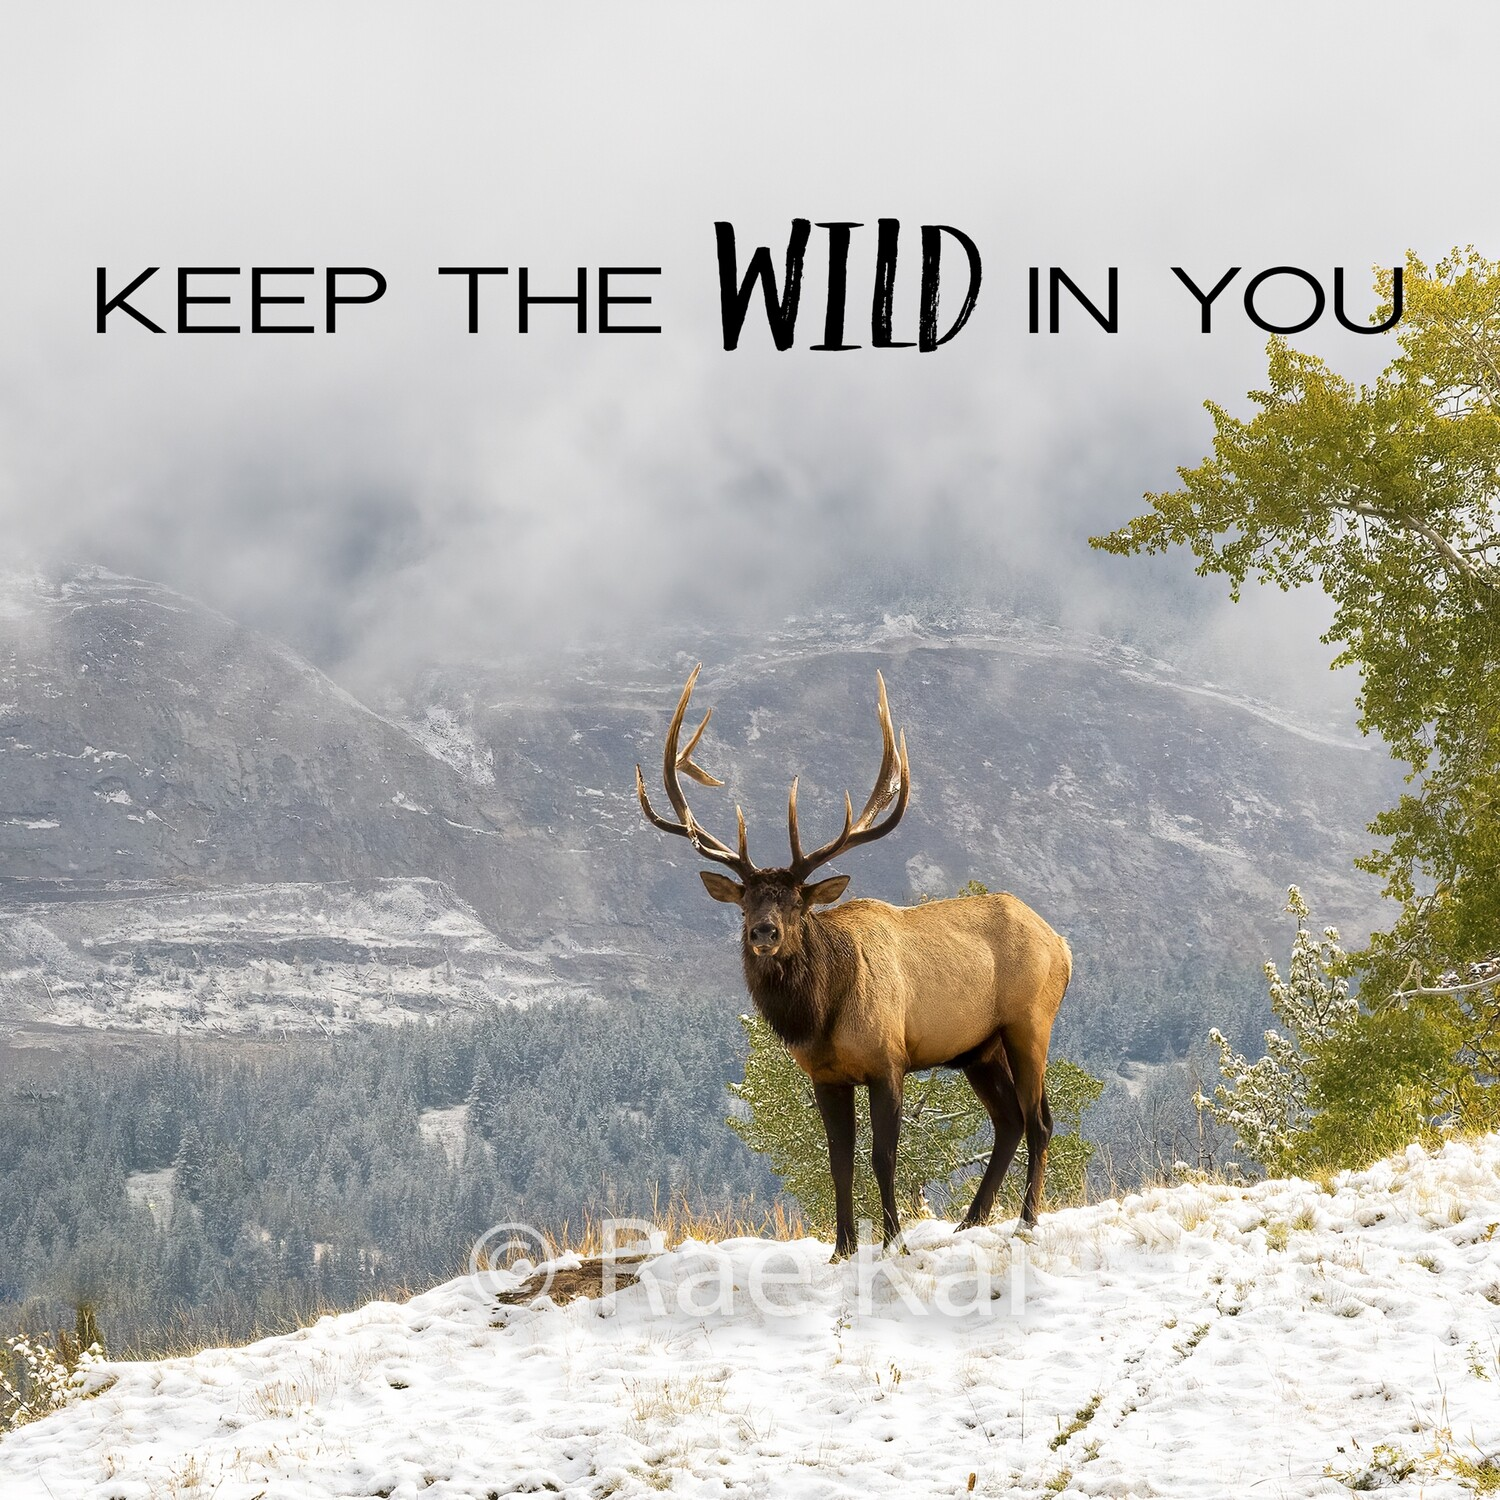 Keep the Wild in You-Inspirational Square Photo